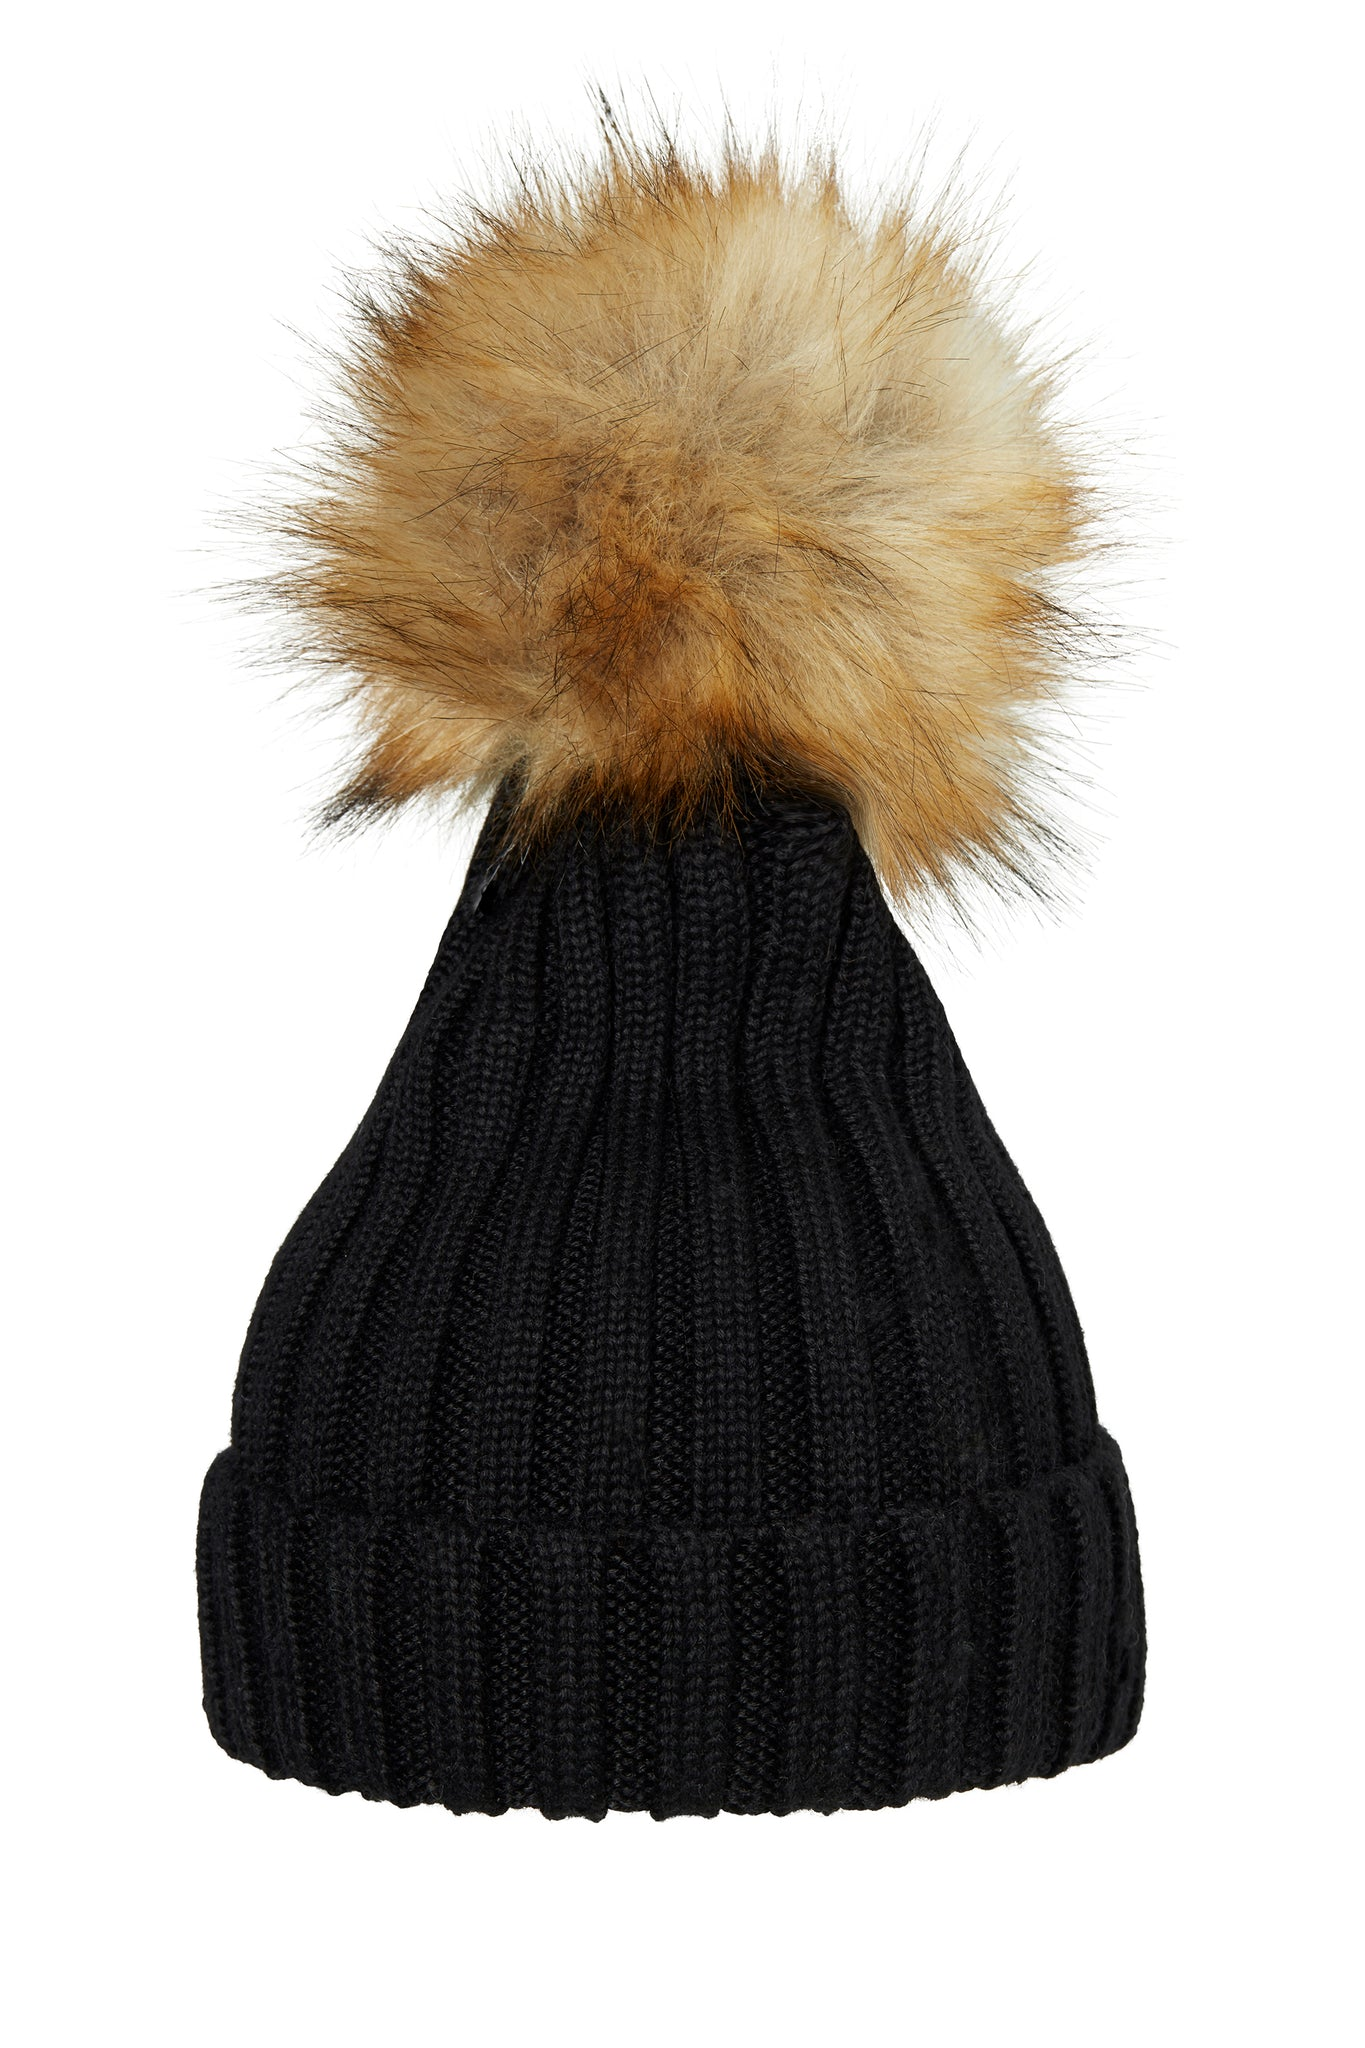 POM POM HAT CLASSIC FAUX FUR BLACK/NATURE